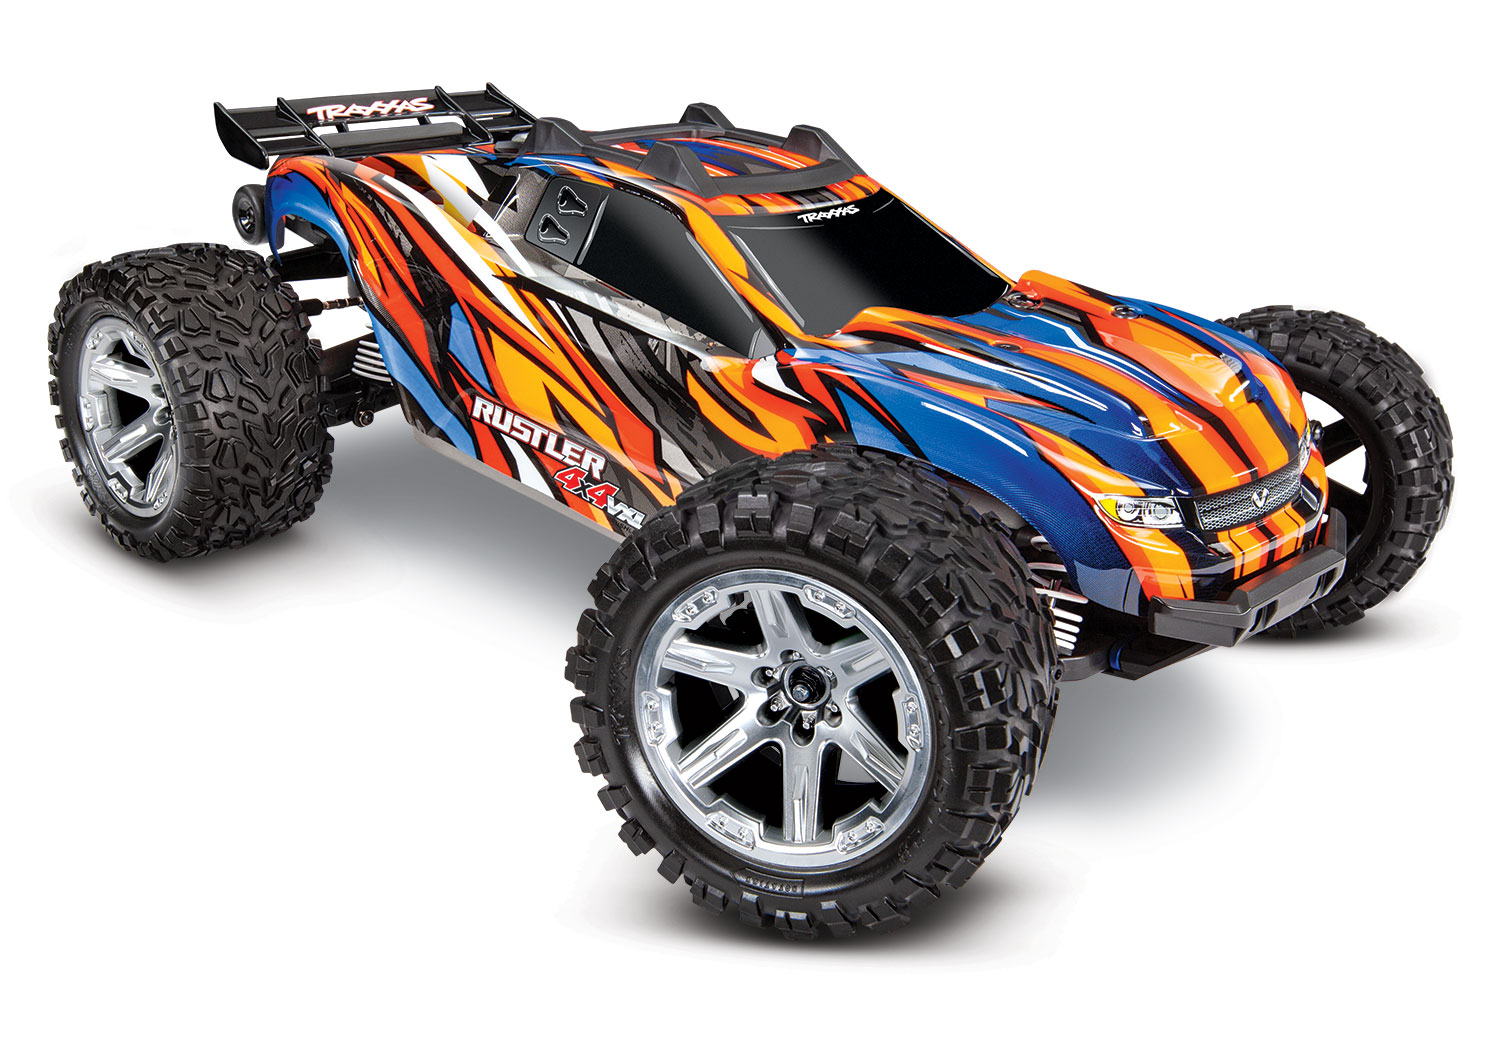 TRXXAS RUSTLER 4x4 Orange 1/10 VXL Brushless - TSM, TRX67076-4-ORNG